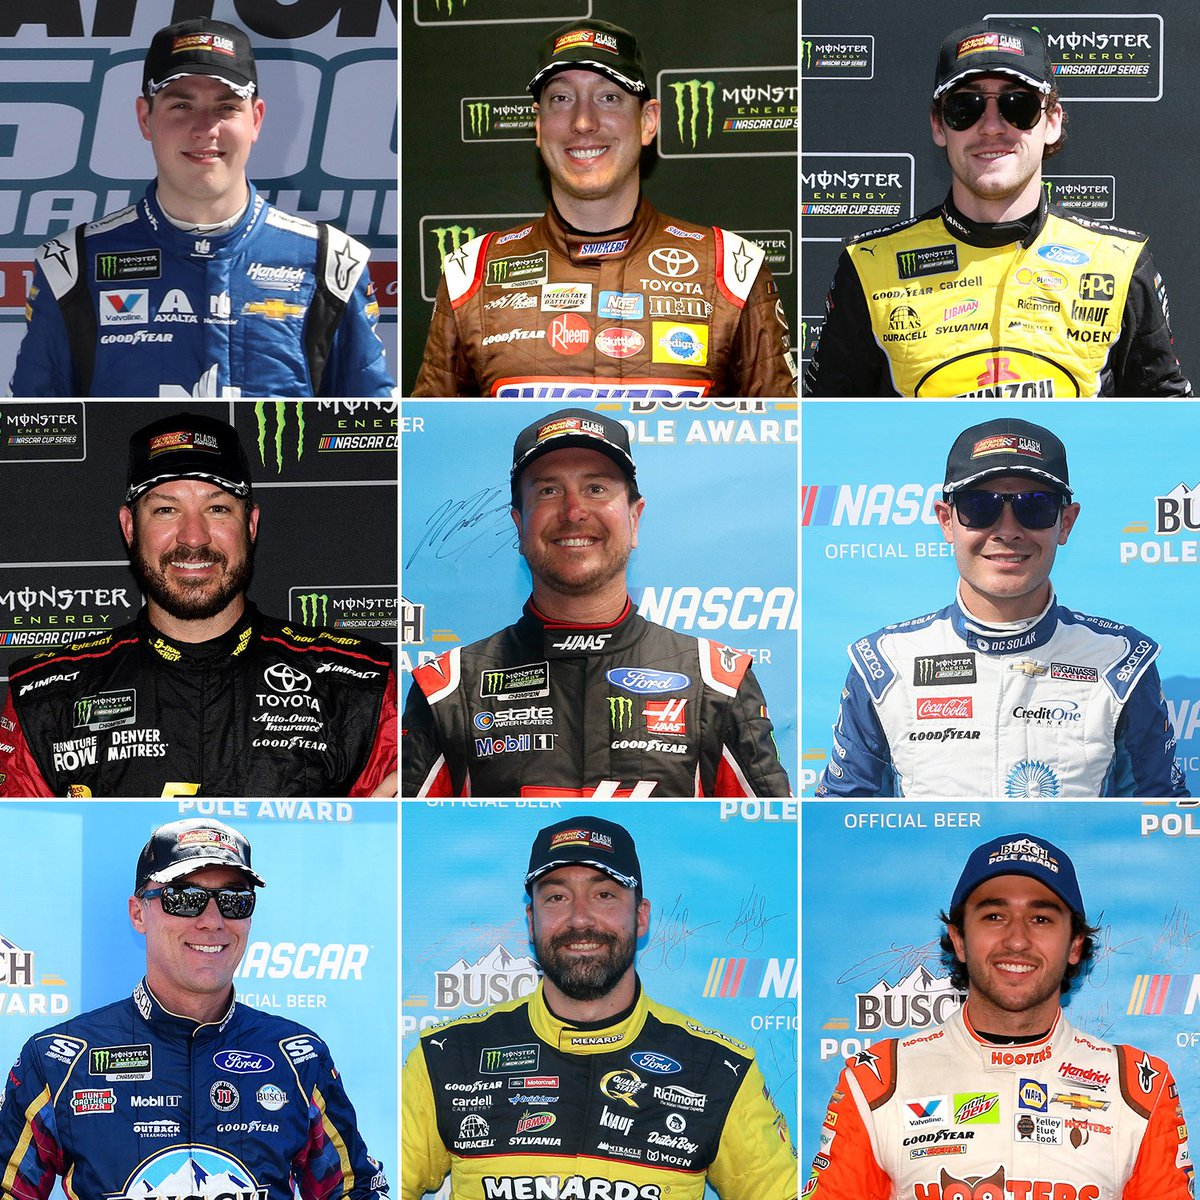 So far this @NASCAR season, 9 drivers have officially qualified for the 2019 #AdvanceAutoClash with pole wins! #AdvanceOnTrack